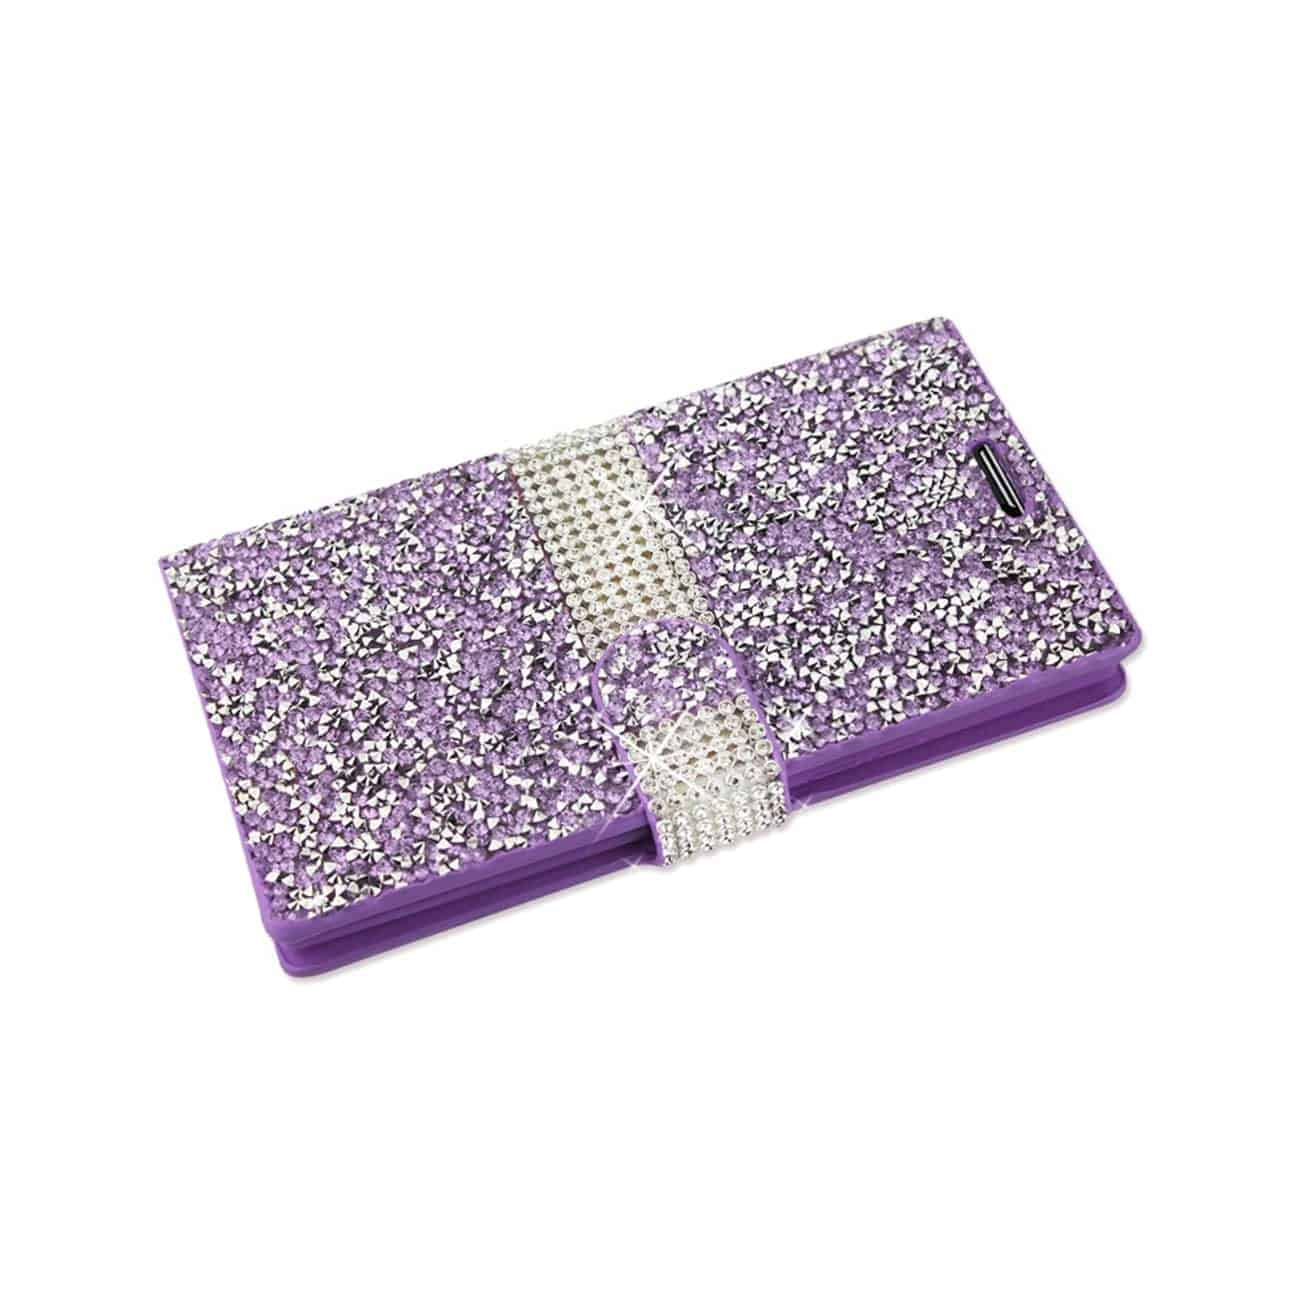 LG SPREE JEWELRY RHINESTONE WALLET CASE IN PURPLE